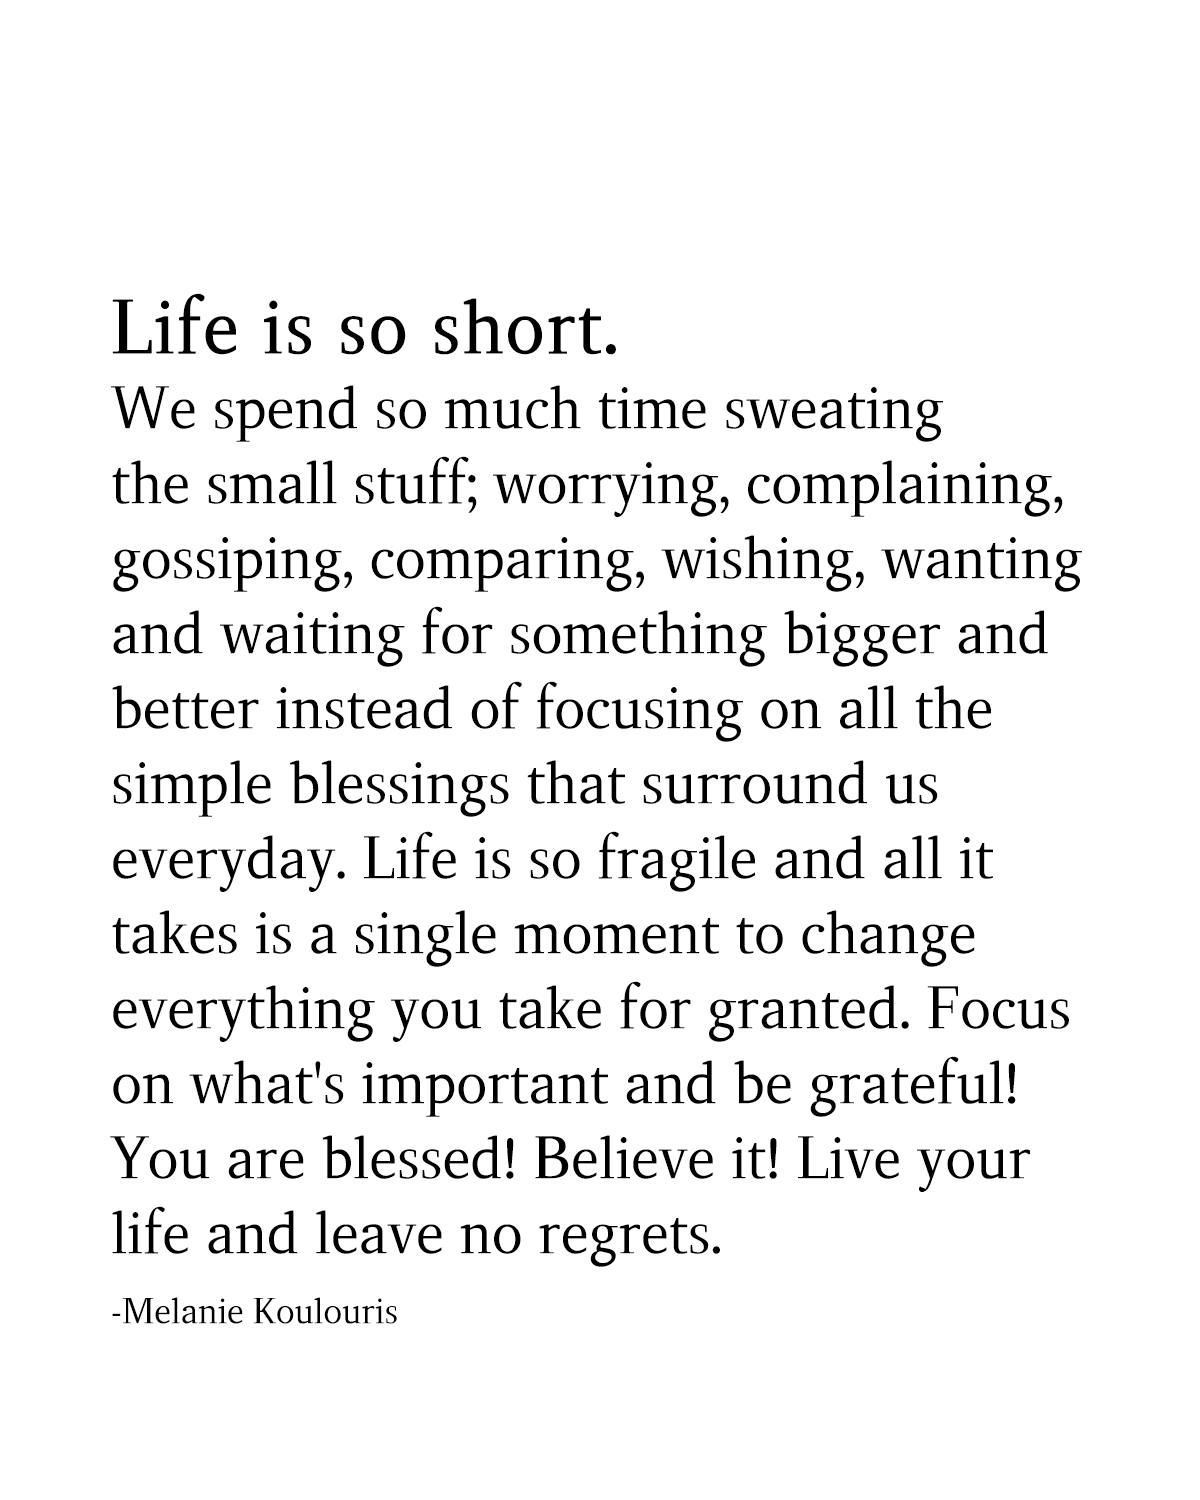 Life Is So Short. We Spend So Much Time Sweating The Small Stuff